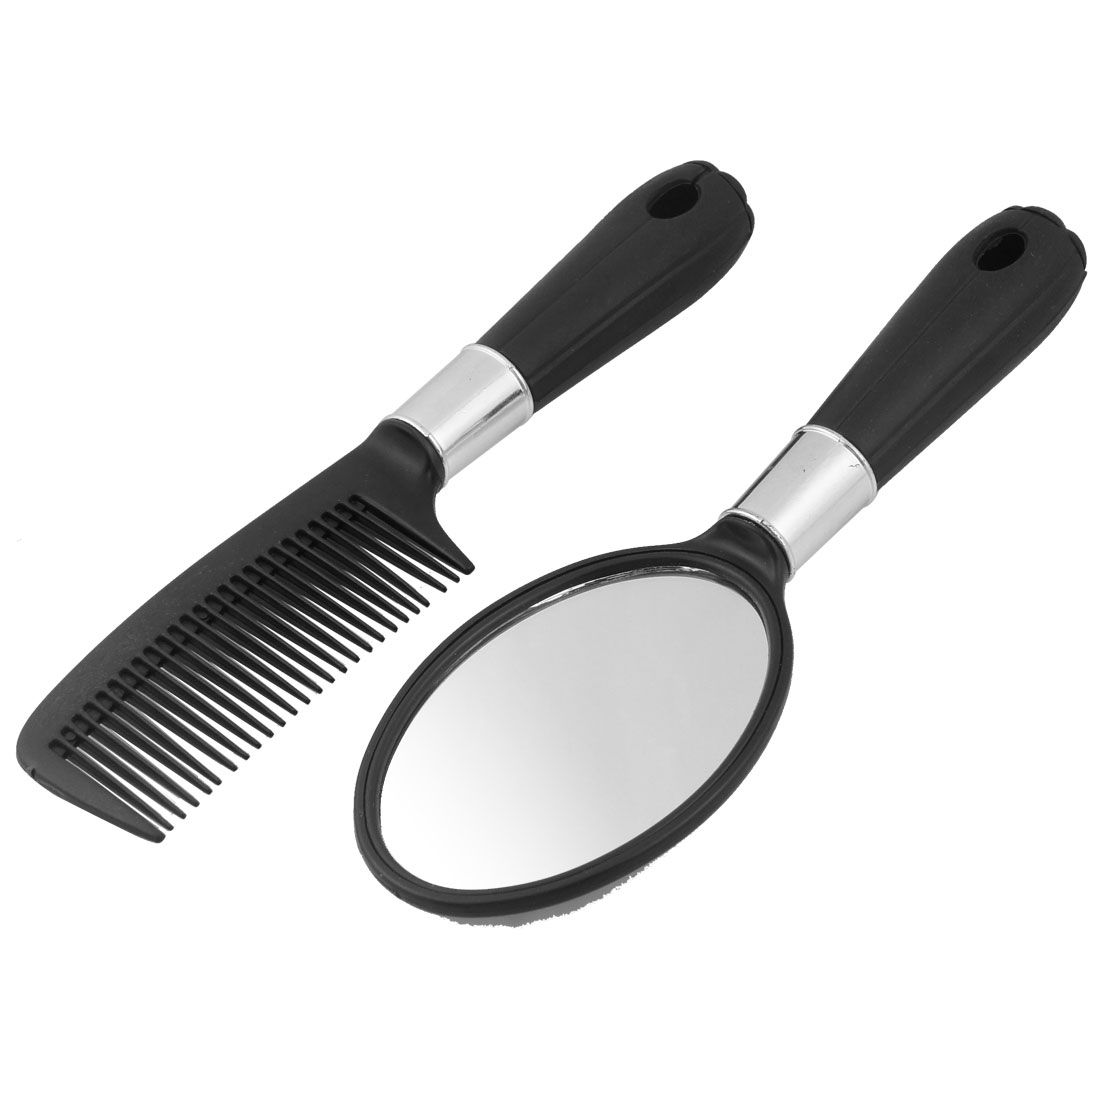 Hairstyle diy black plastic handle rectangle hair comb mirror set Rocker chic medium shag hairstyles